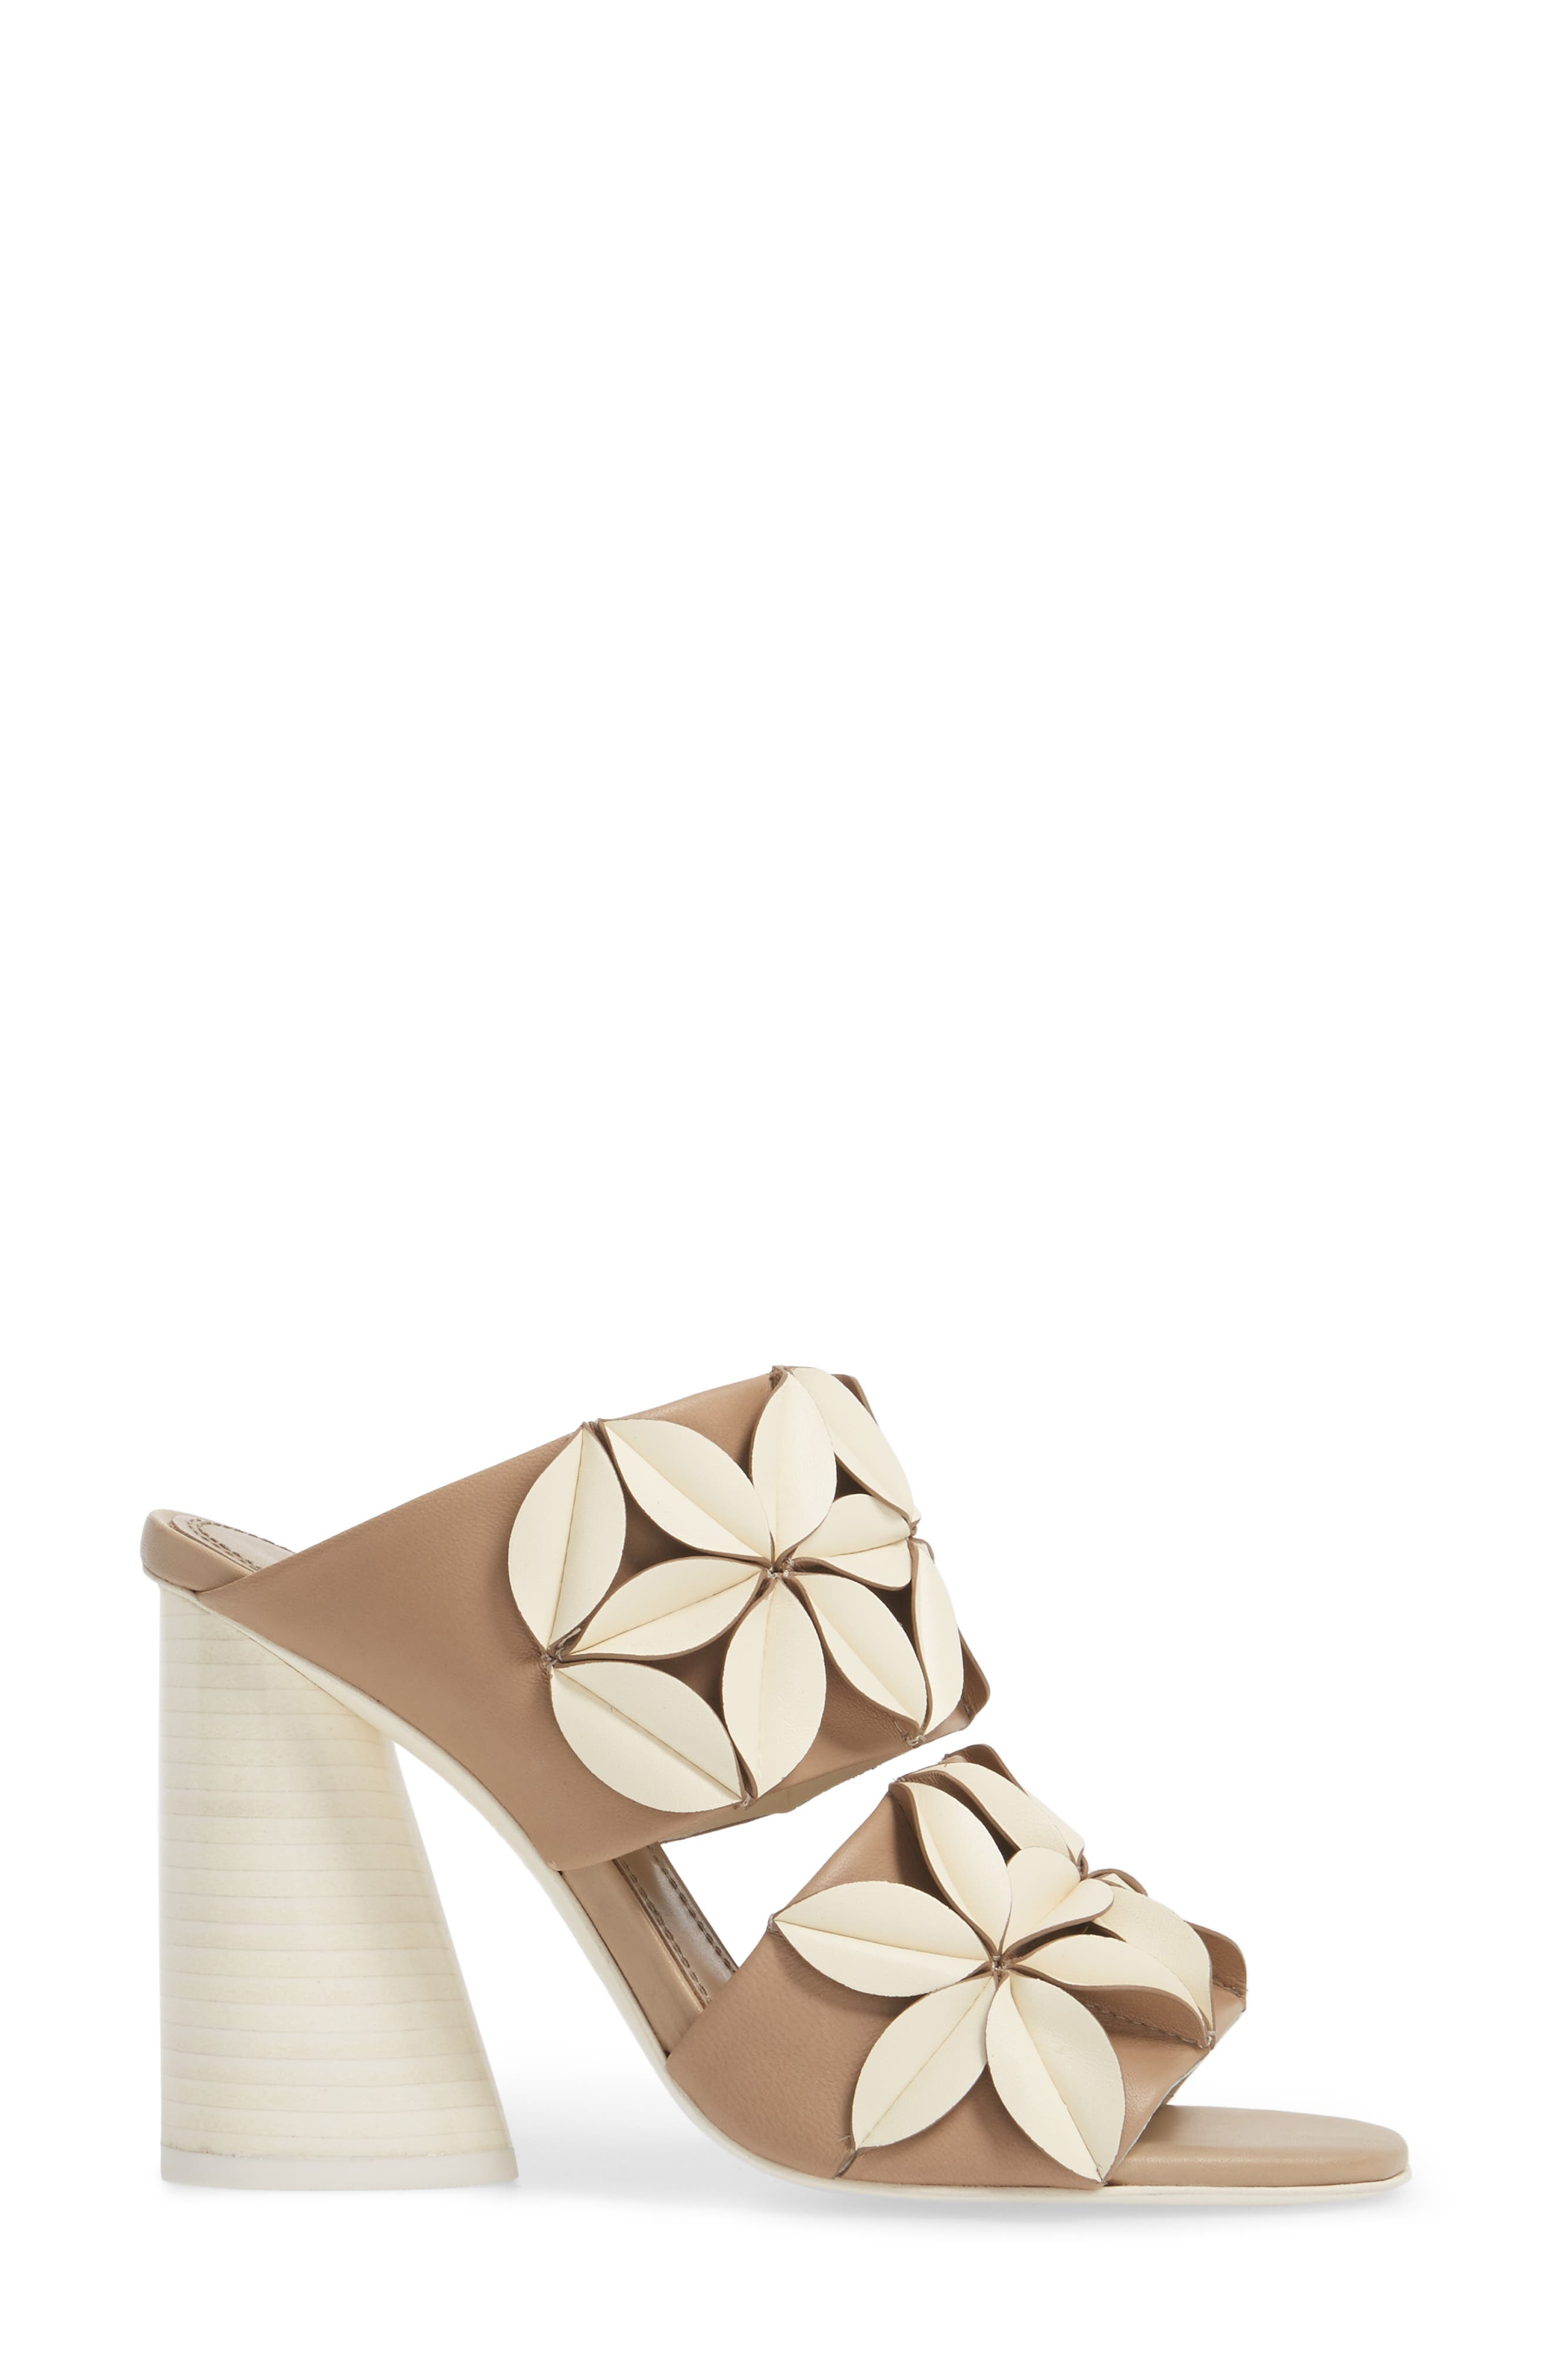 Mura Floral Embellished Mule,                             Alternate thumbnail 3, color,                             Ivory/ Taupe